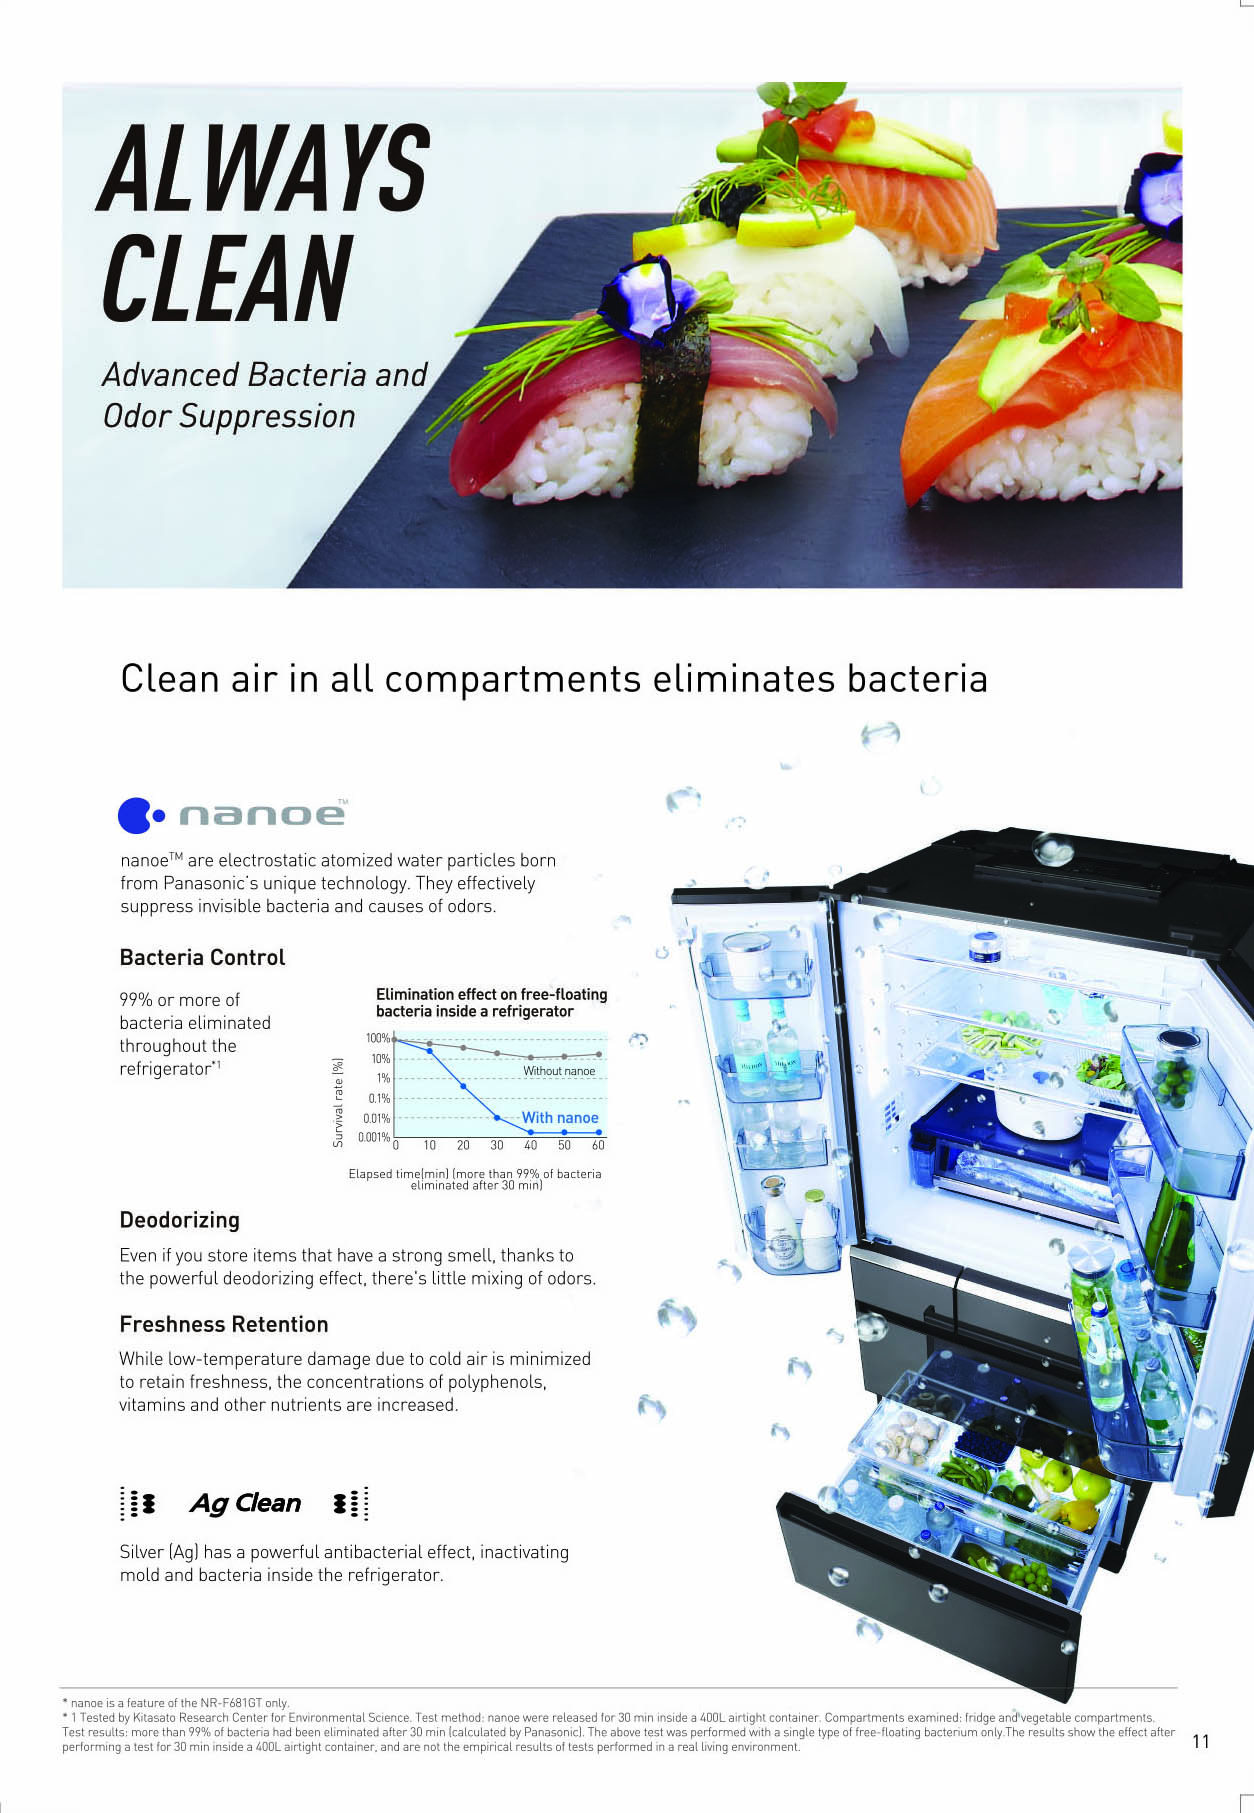 Panasonic AG Clean - Say Goodbye to Stinky Refrigerator Smells (featuring Panasonic Ag Clean)